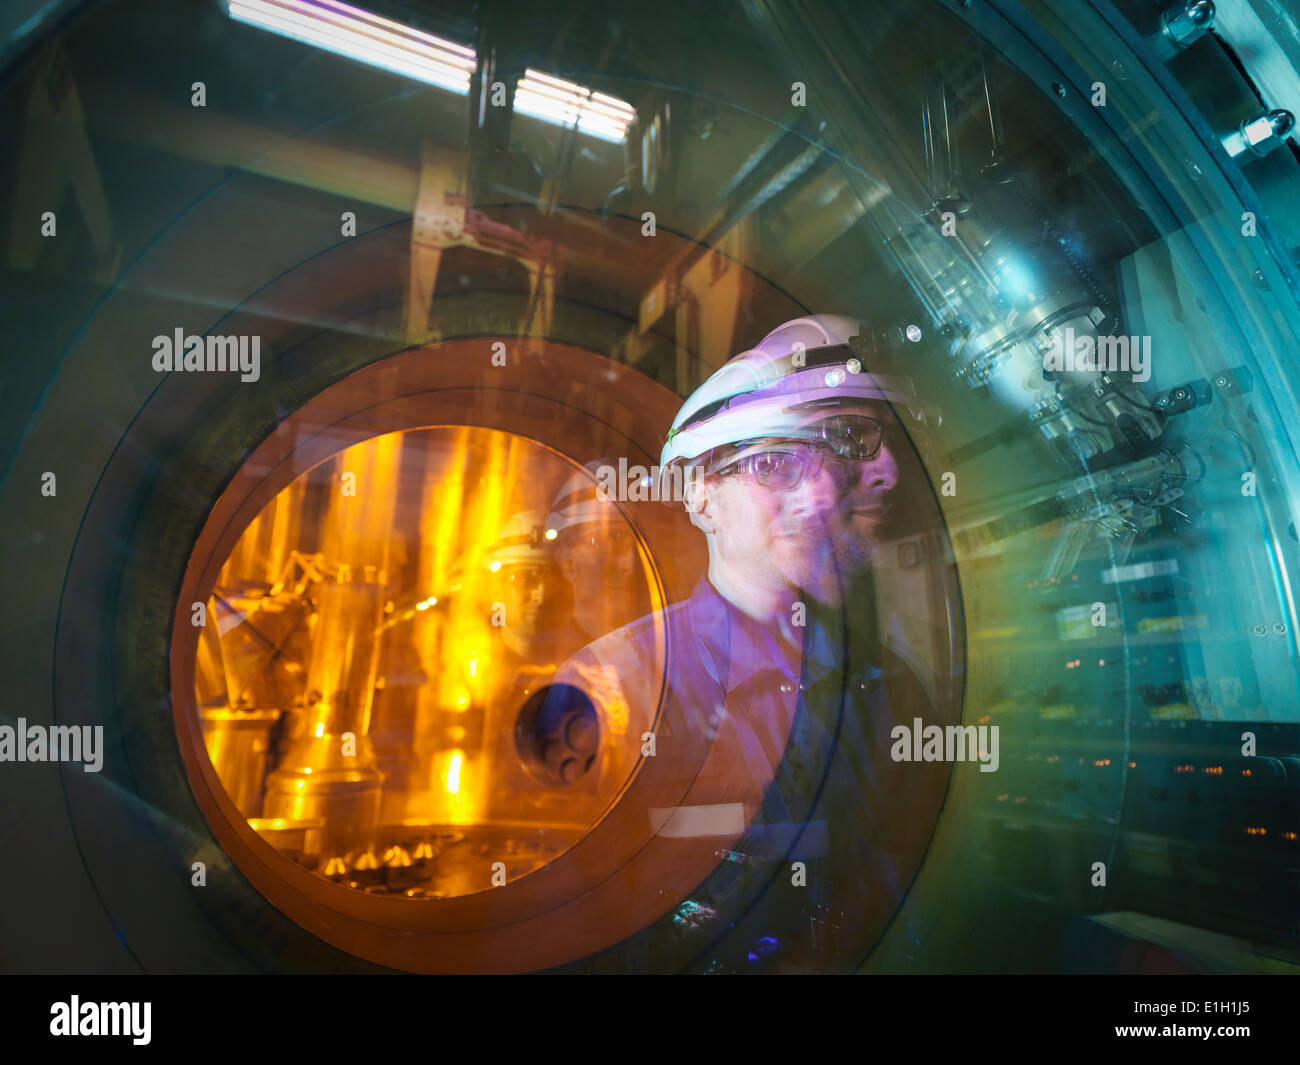 Engineer reflected in glass of fuel rod handling machine in nuclear power station - Stock Image